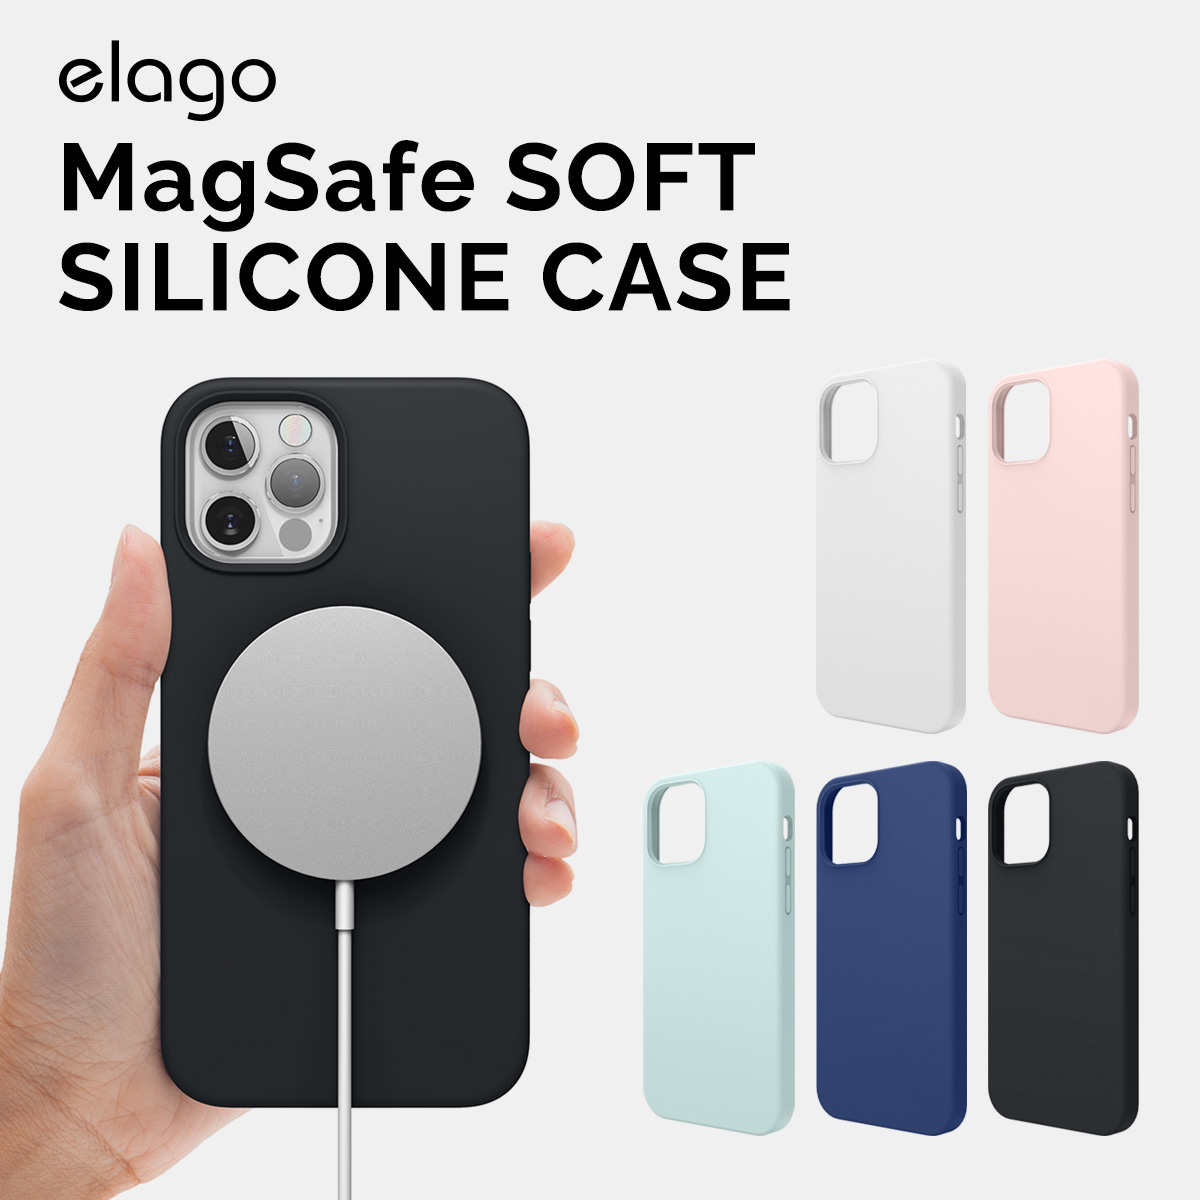 elago MagSafe SOFT SILICONE CASE for iPhone12 Pro Max